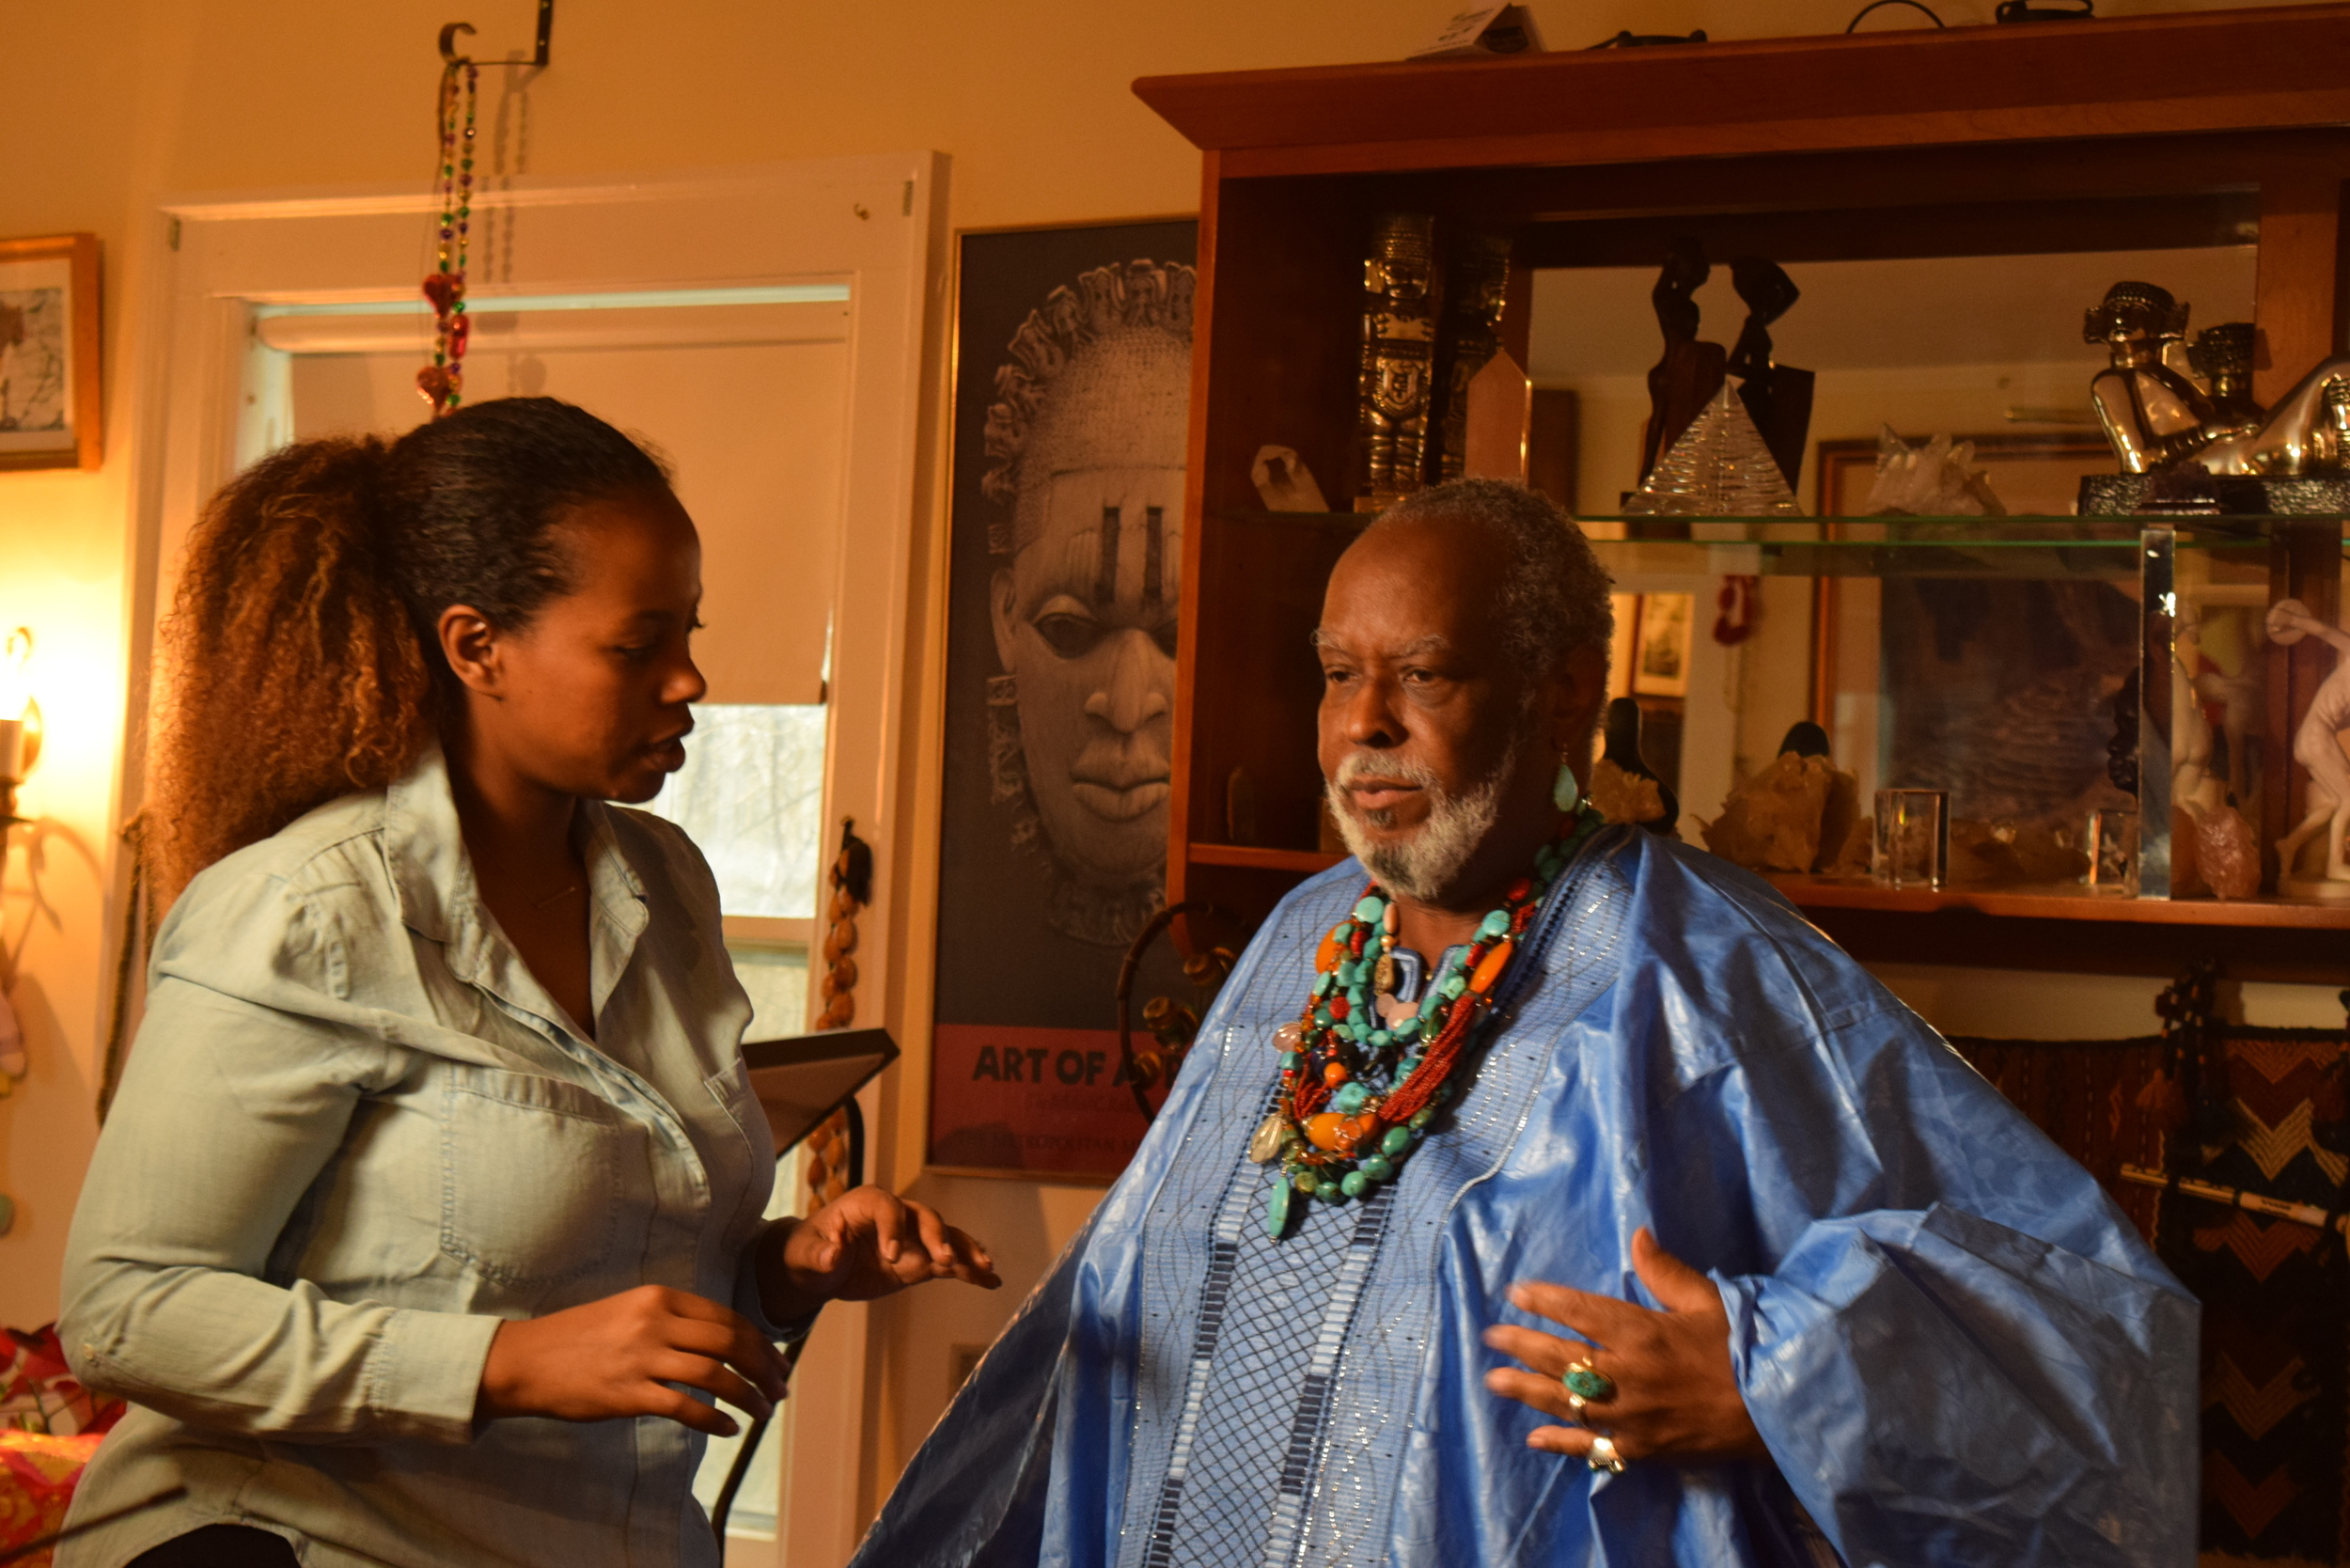 DivaMan was interviewed by CNN's Haimy Assefa (pictured with DivaMan in his living room) on March 28, 2016 for TheGreatBigStory.com. The segment was published on Tuesday, April 5, 2016. See the video  HERE  and read reactions from friends and fans below!!!!!!!!!!